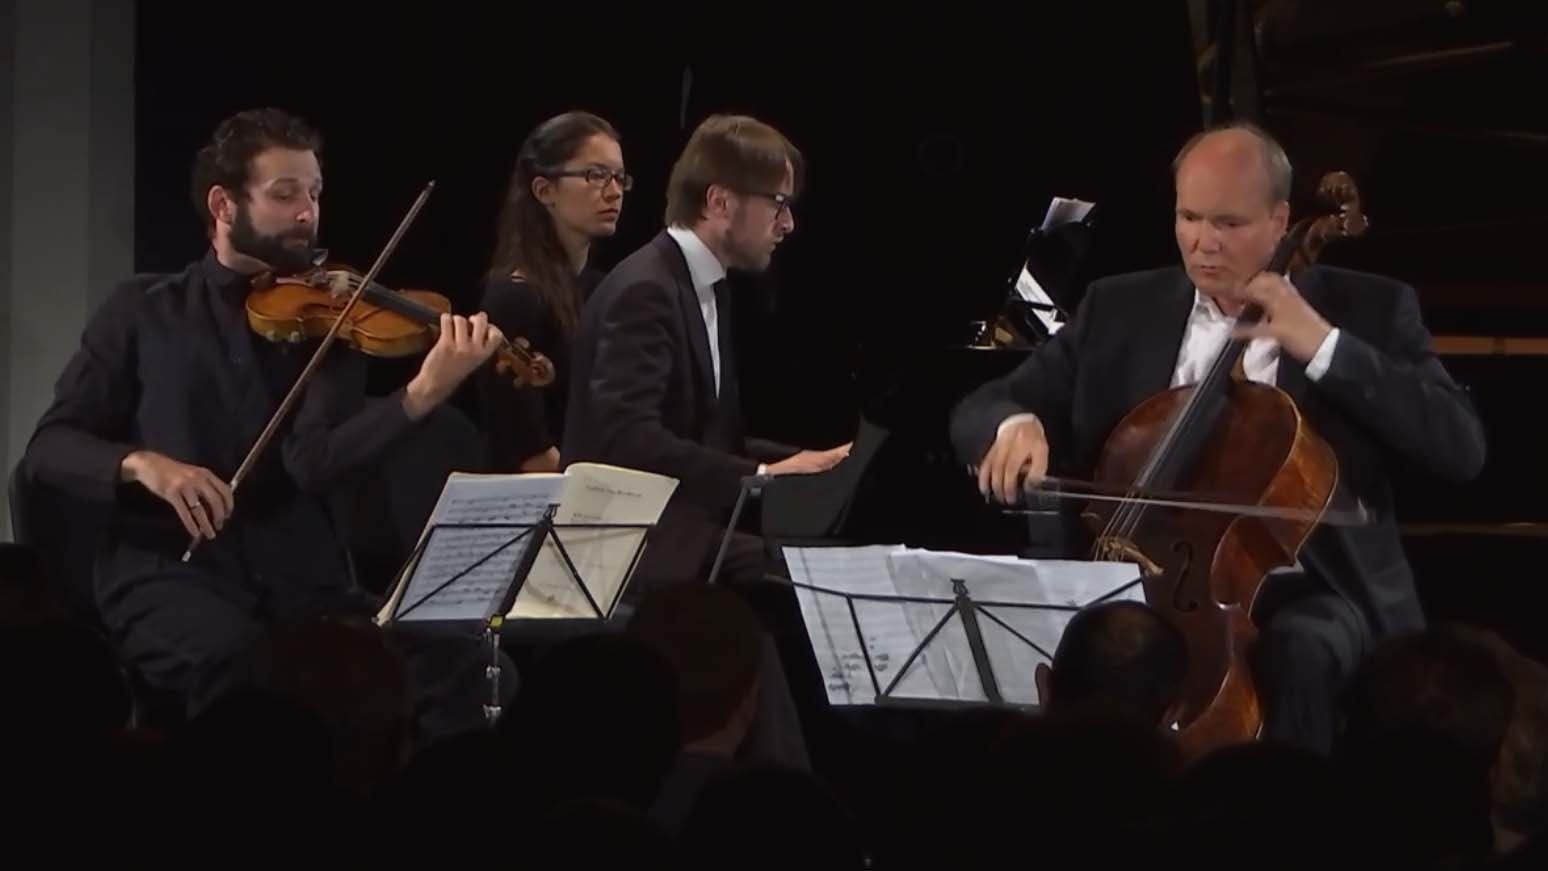 Ilya Gringolts, Truls Mørk and Daniil Trifonov perform Beethoven, Schubert and Brahms